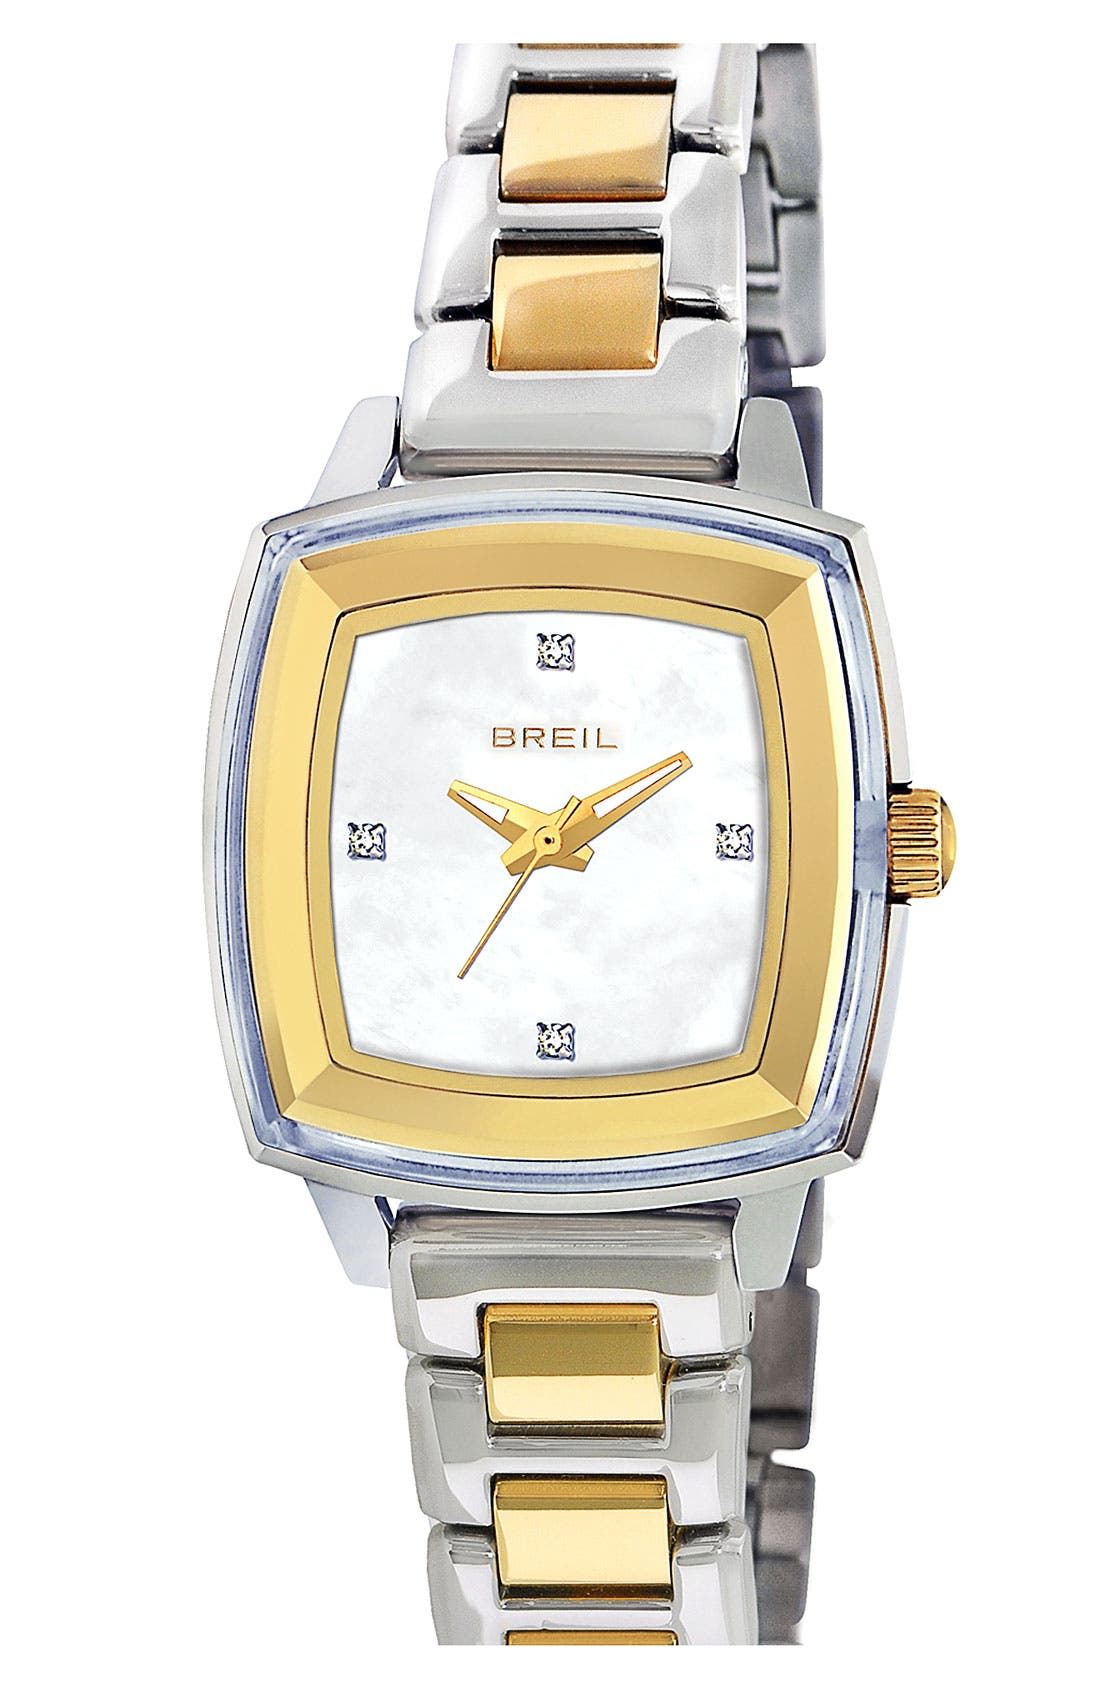 Main Image - Breil 'Orchestra' Square Case Bracelet Watch, 29mm x 36mm